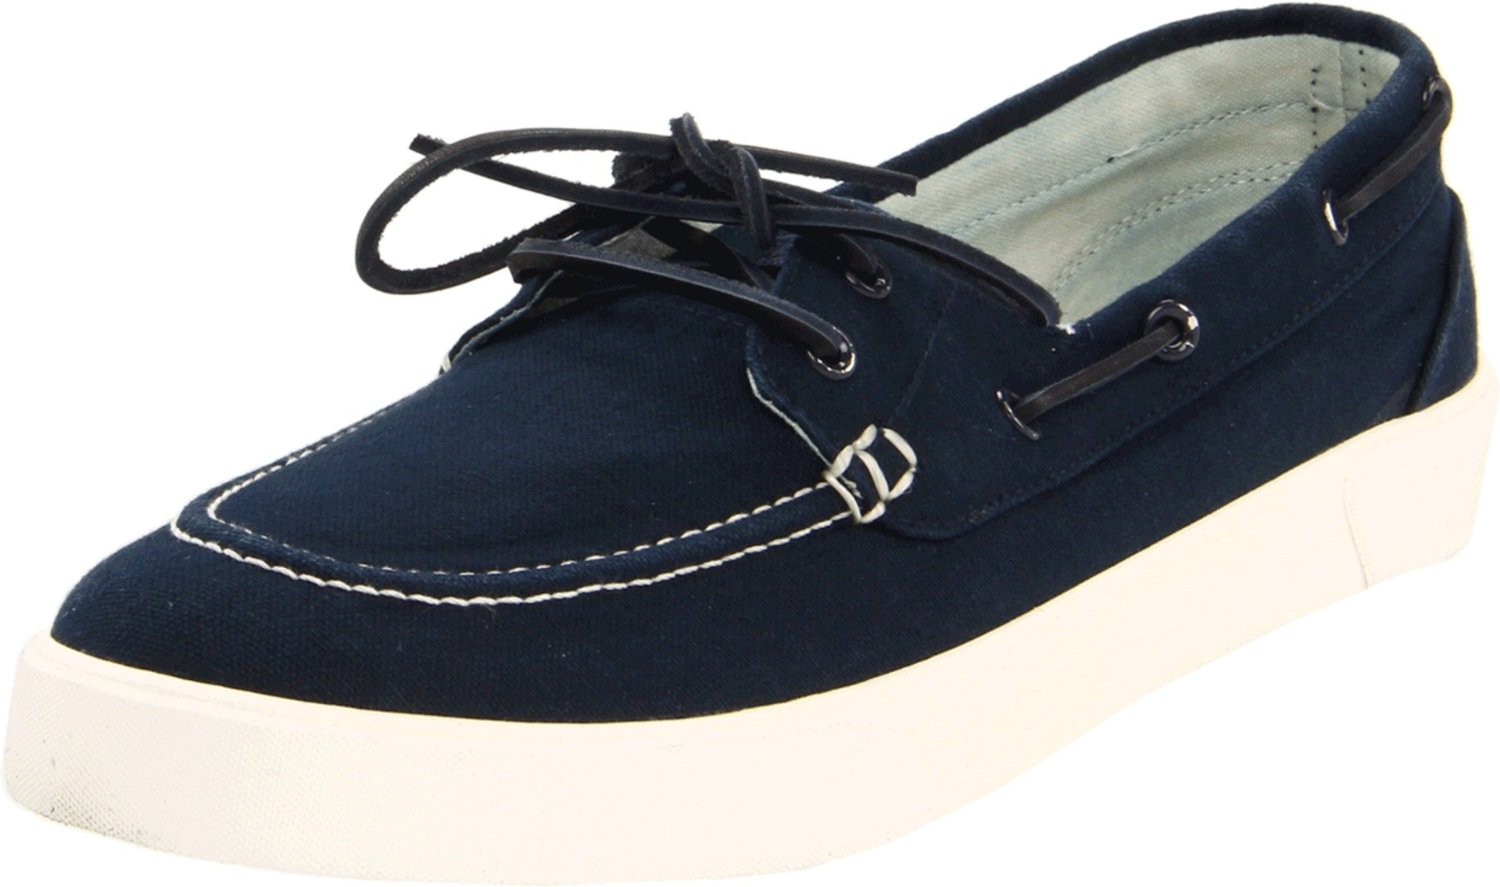 If you want your little princess to flaunt a stylish warm-weather look, gift her the Polo Sander Canvas Boat Shoe. Featuring deck-shoe laces that thread through metal grommets at the sides, this cool shoe exudes maritime-inspired style.